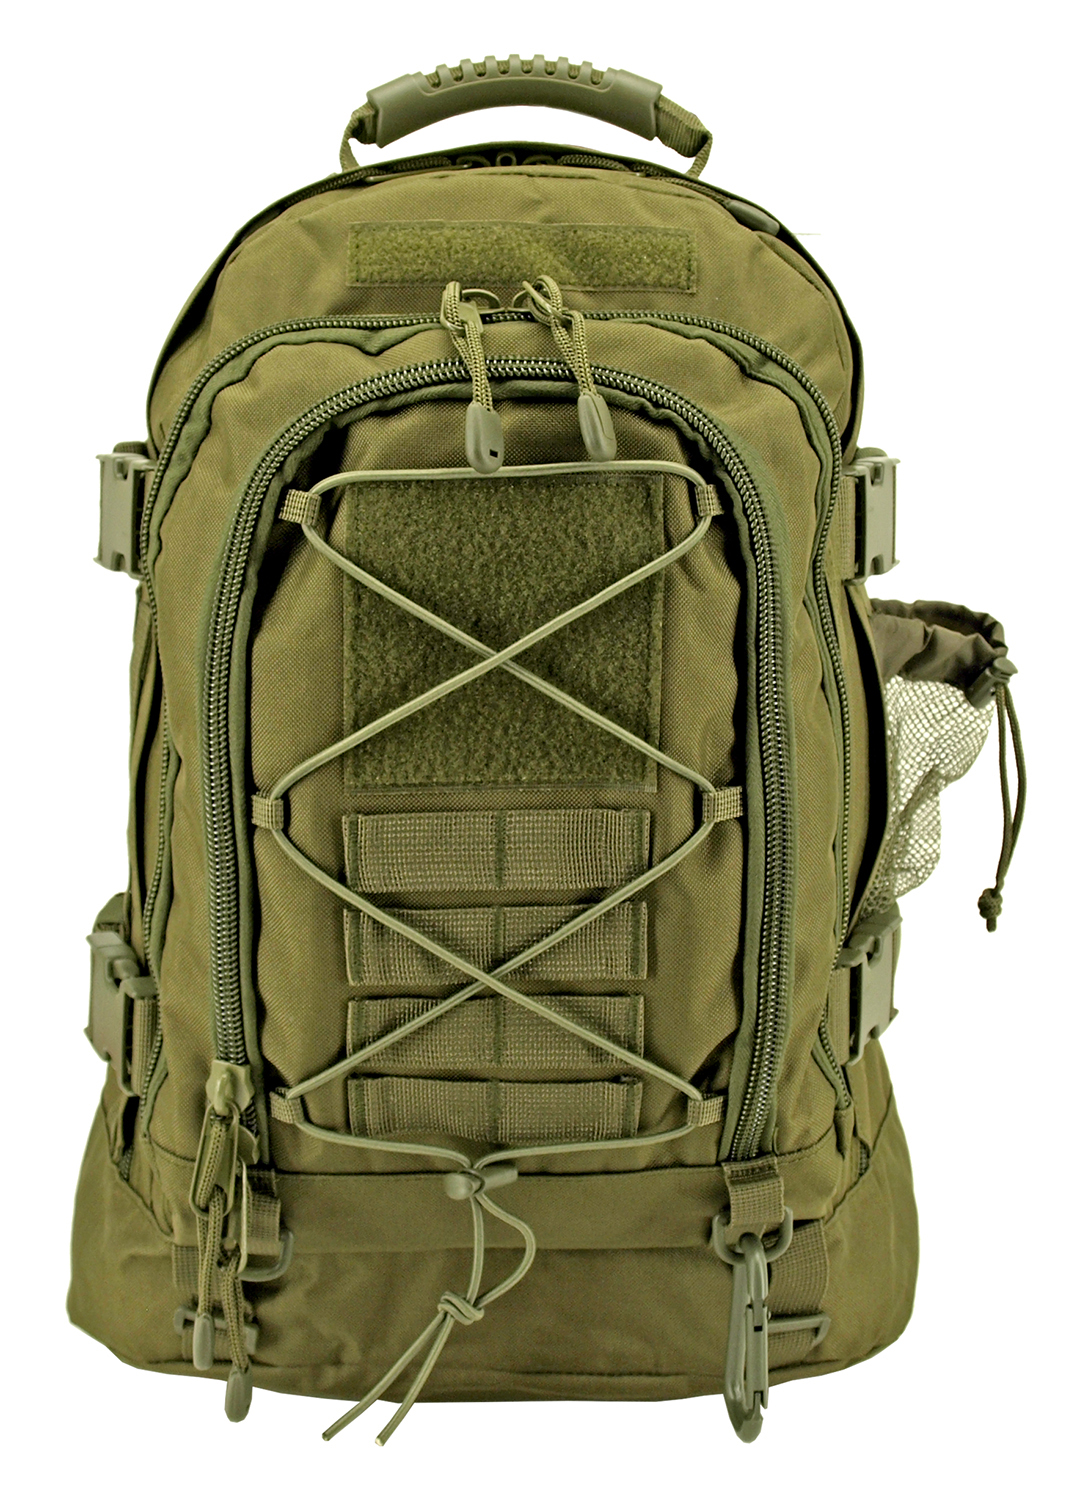 Expandable Tactical Elite Backpack - Olive Green